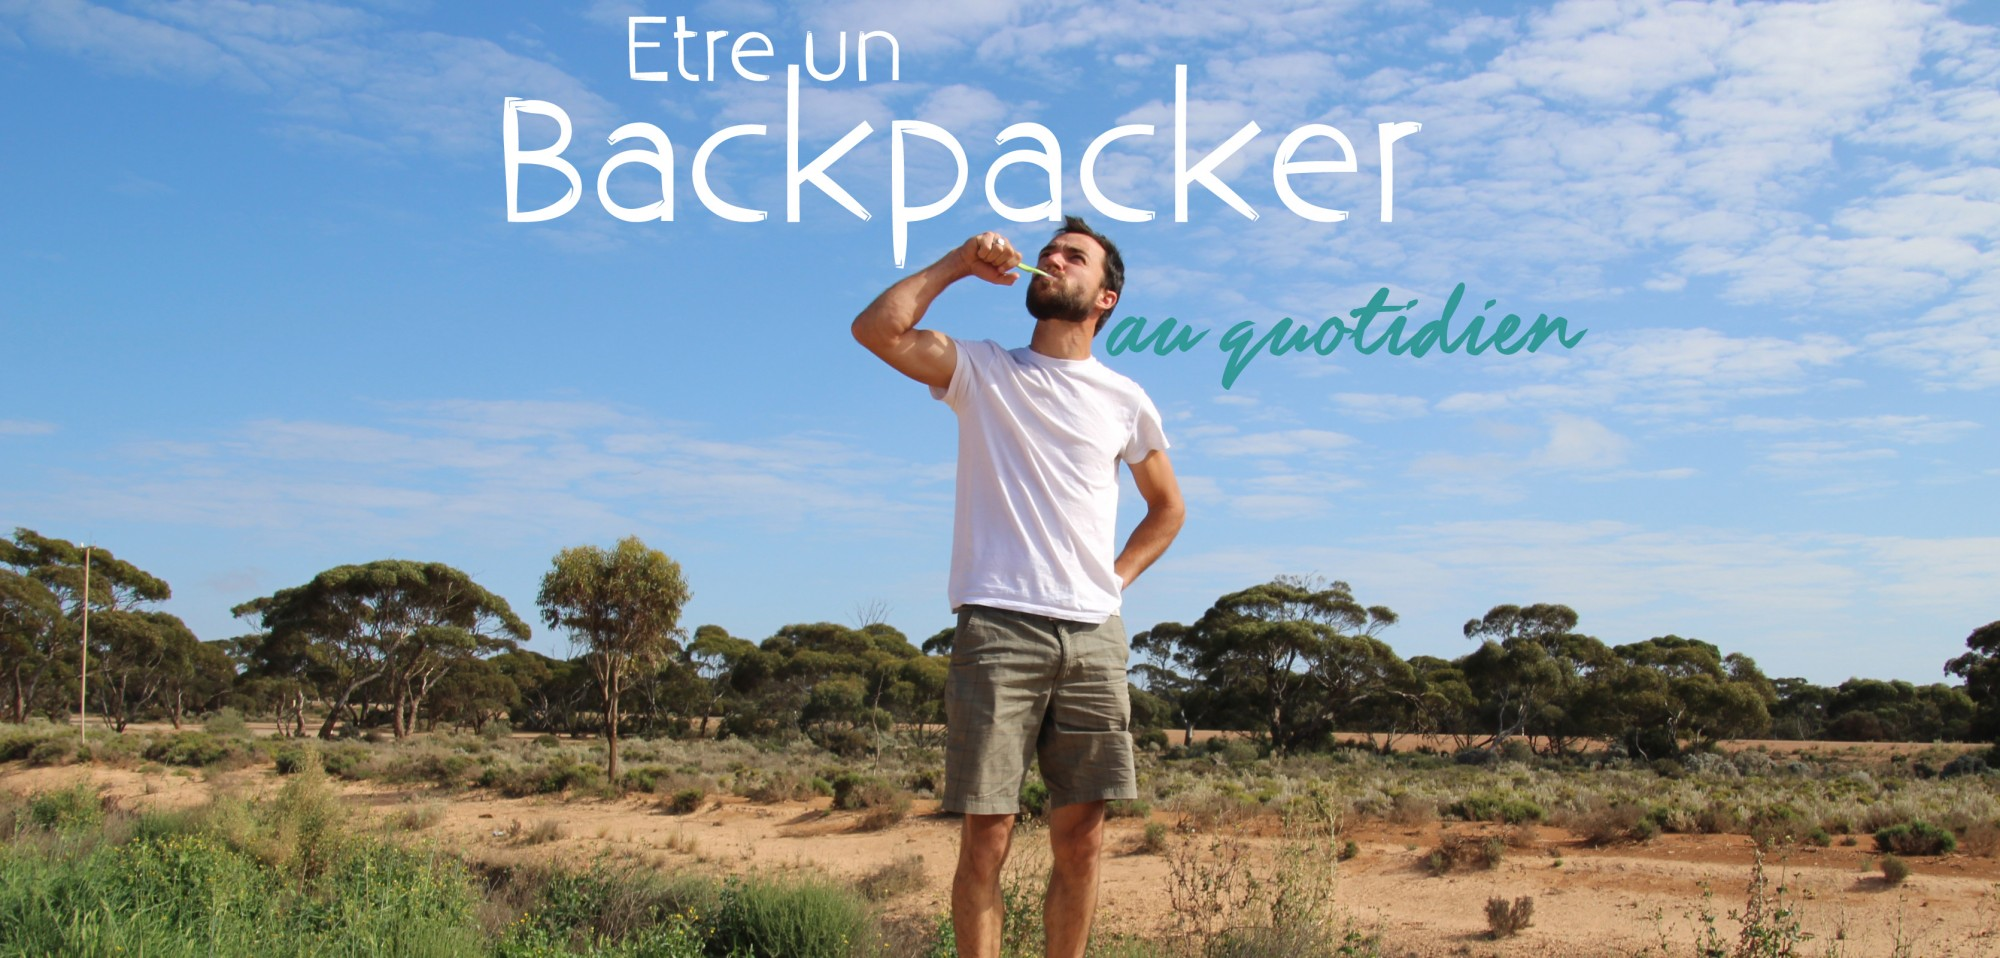 Le quotidien d'un backpacker en 10 photos